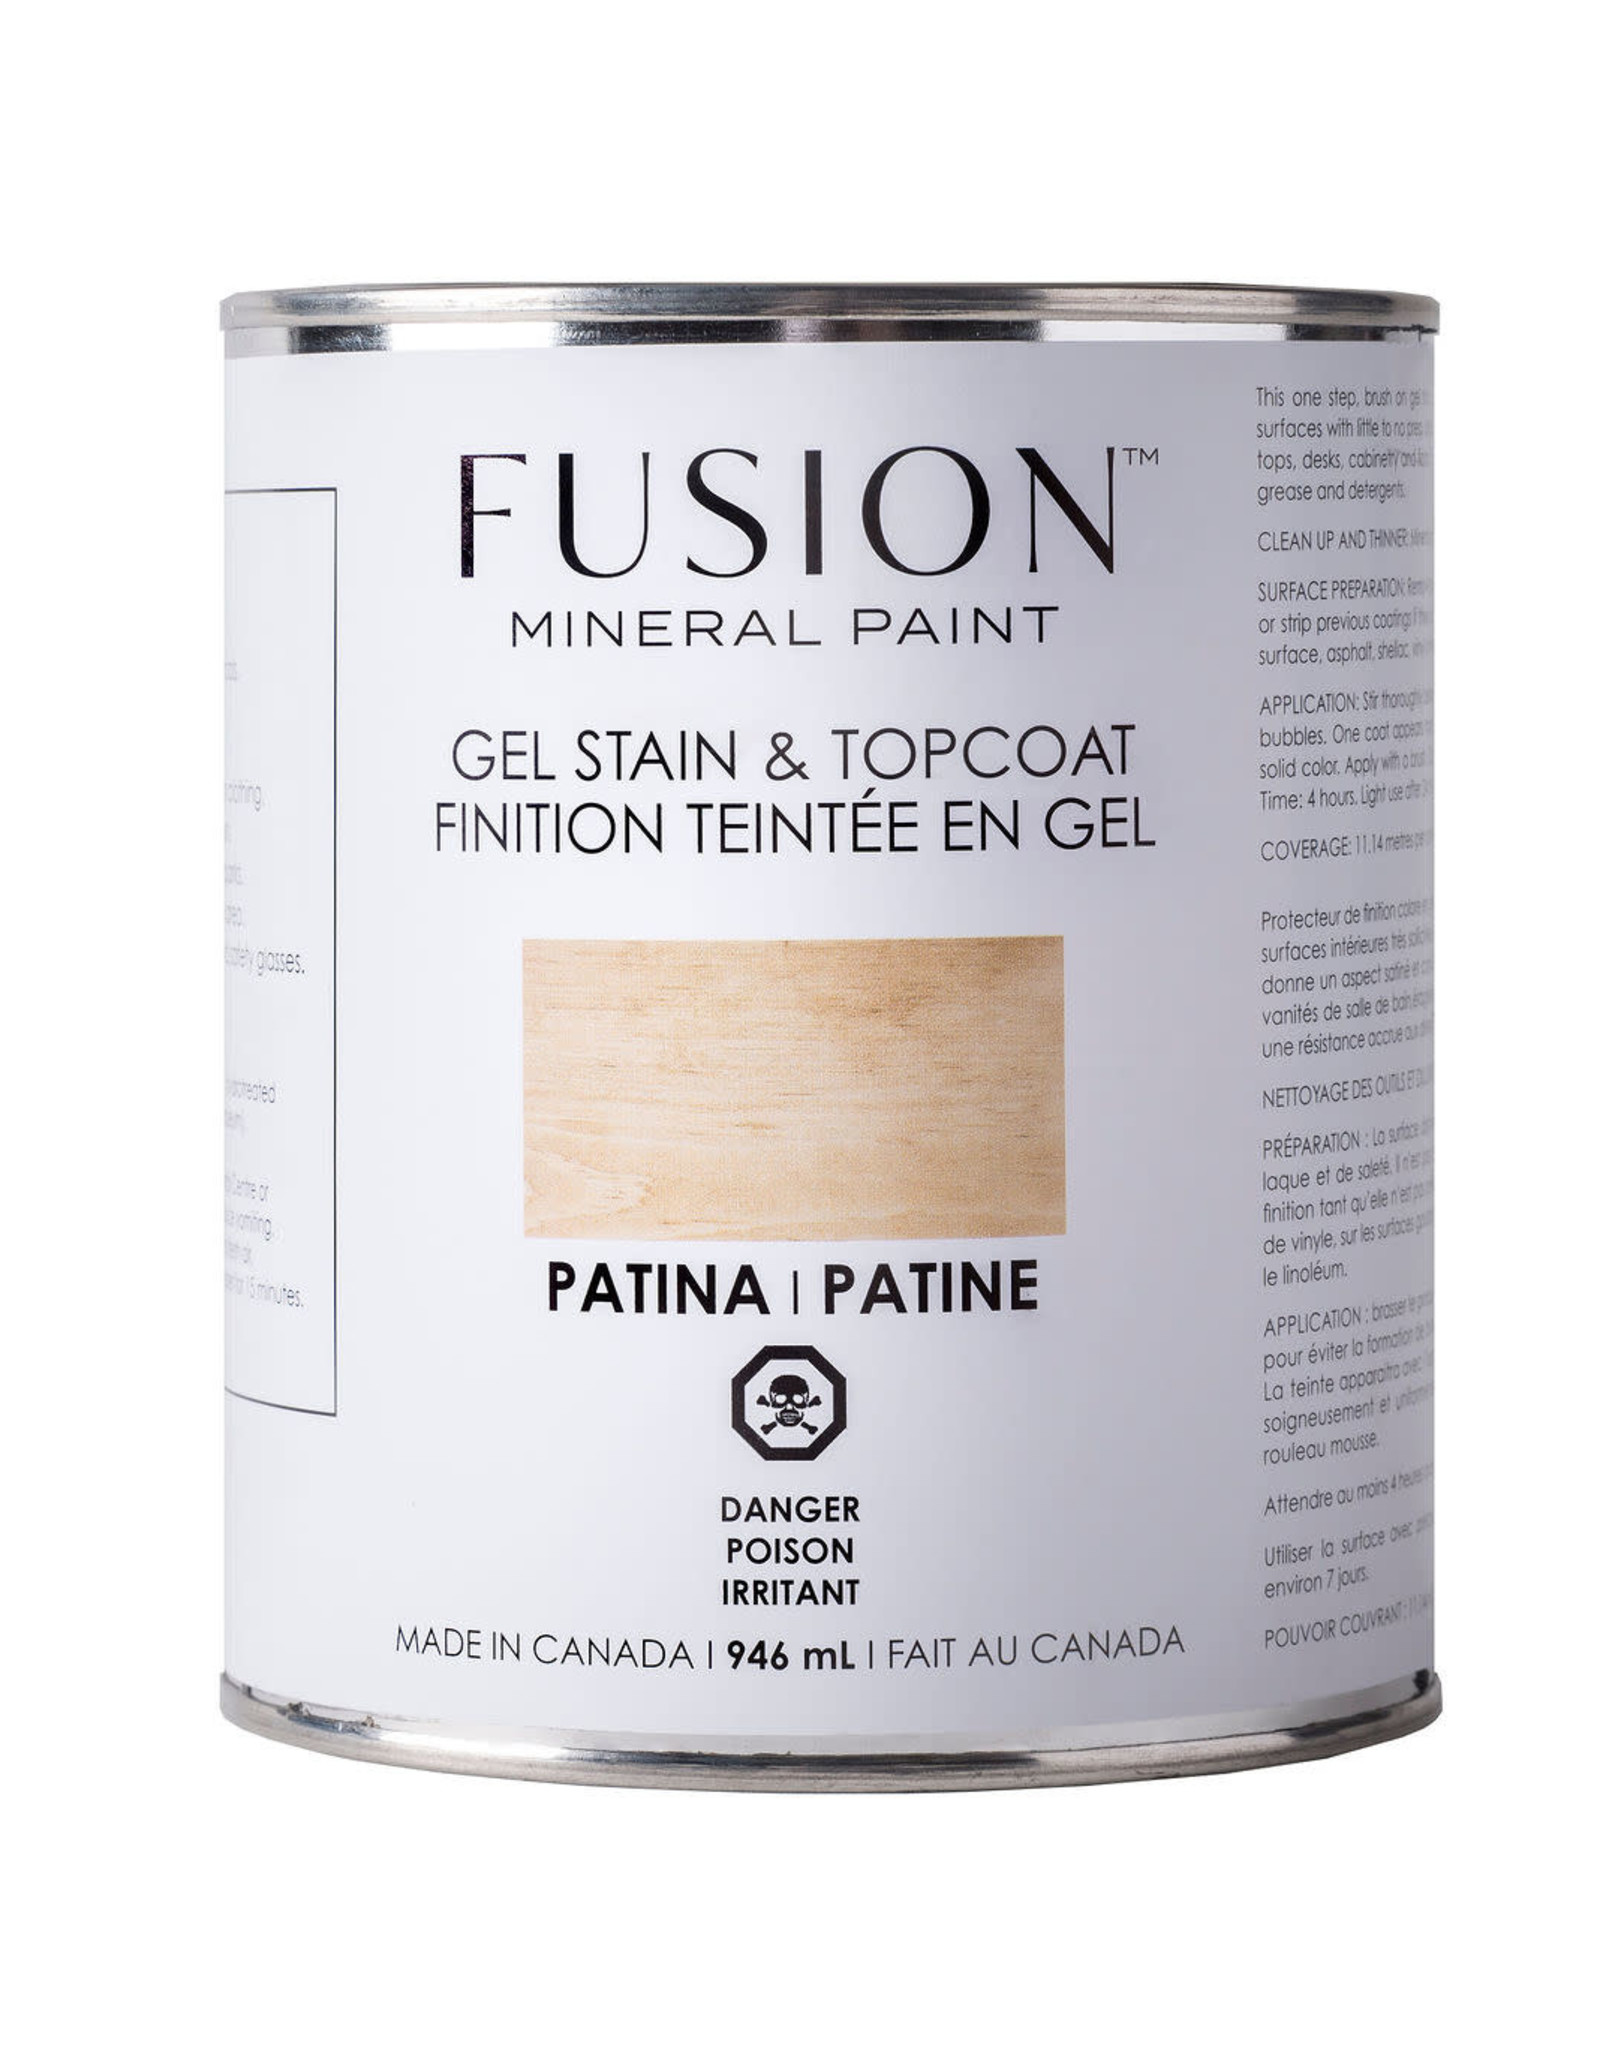 Fusion Mineral Paint Gel Stain & Topcoat - Patina